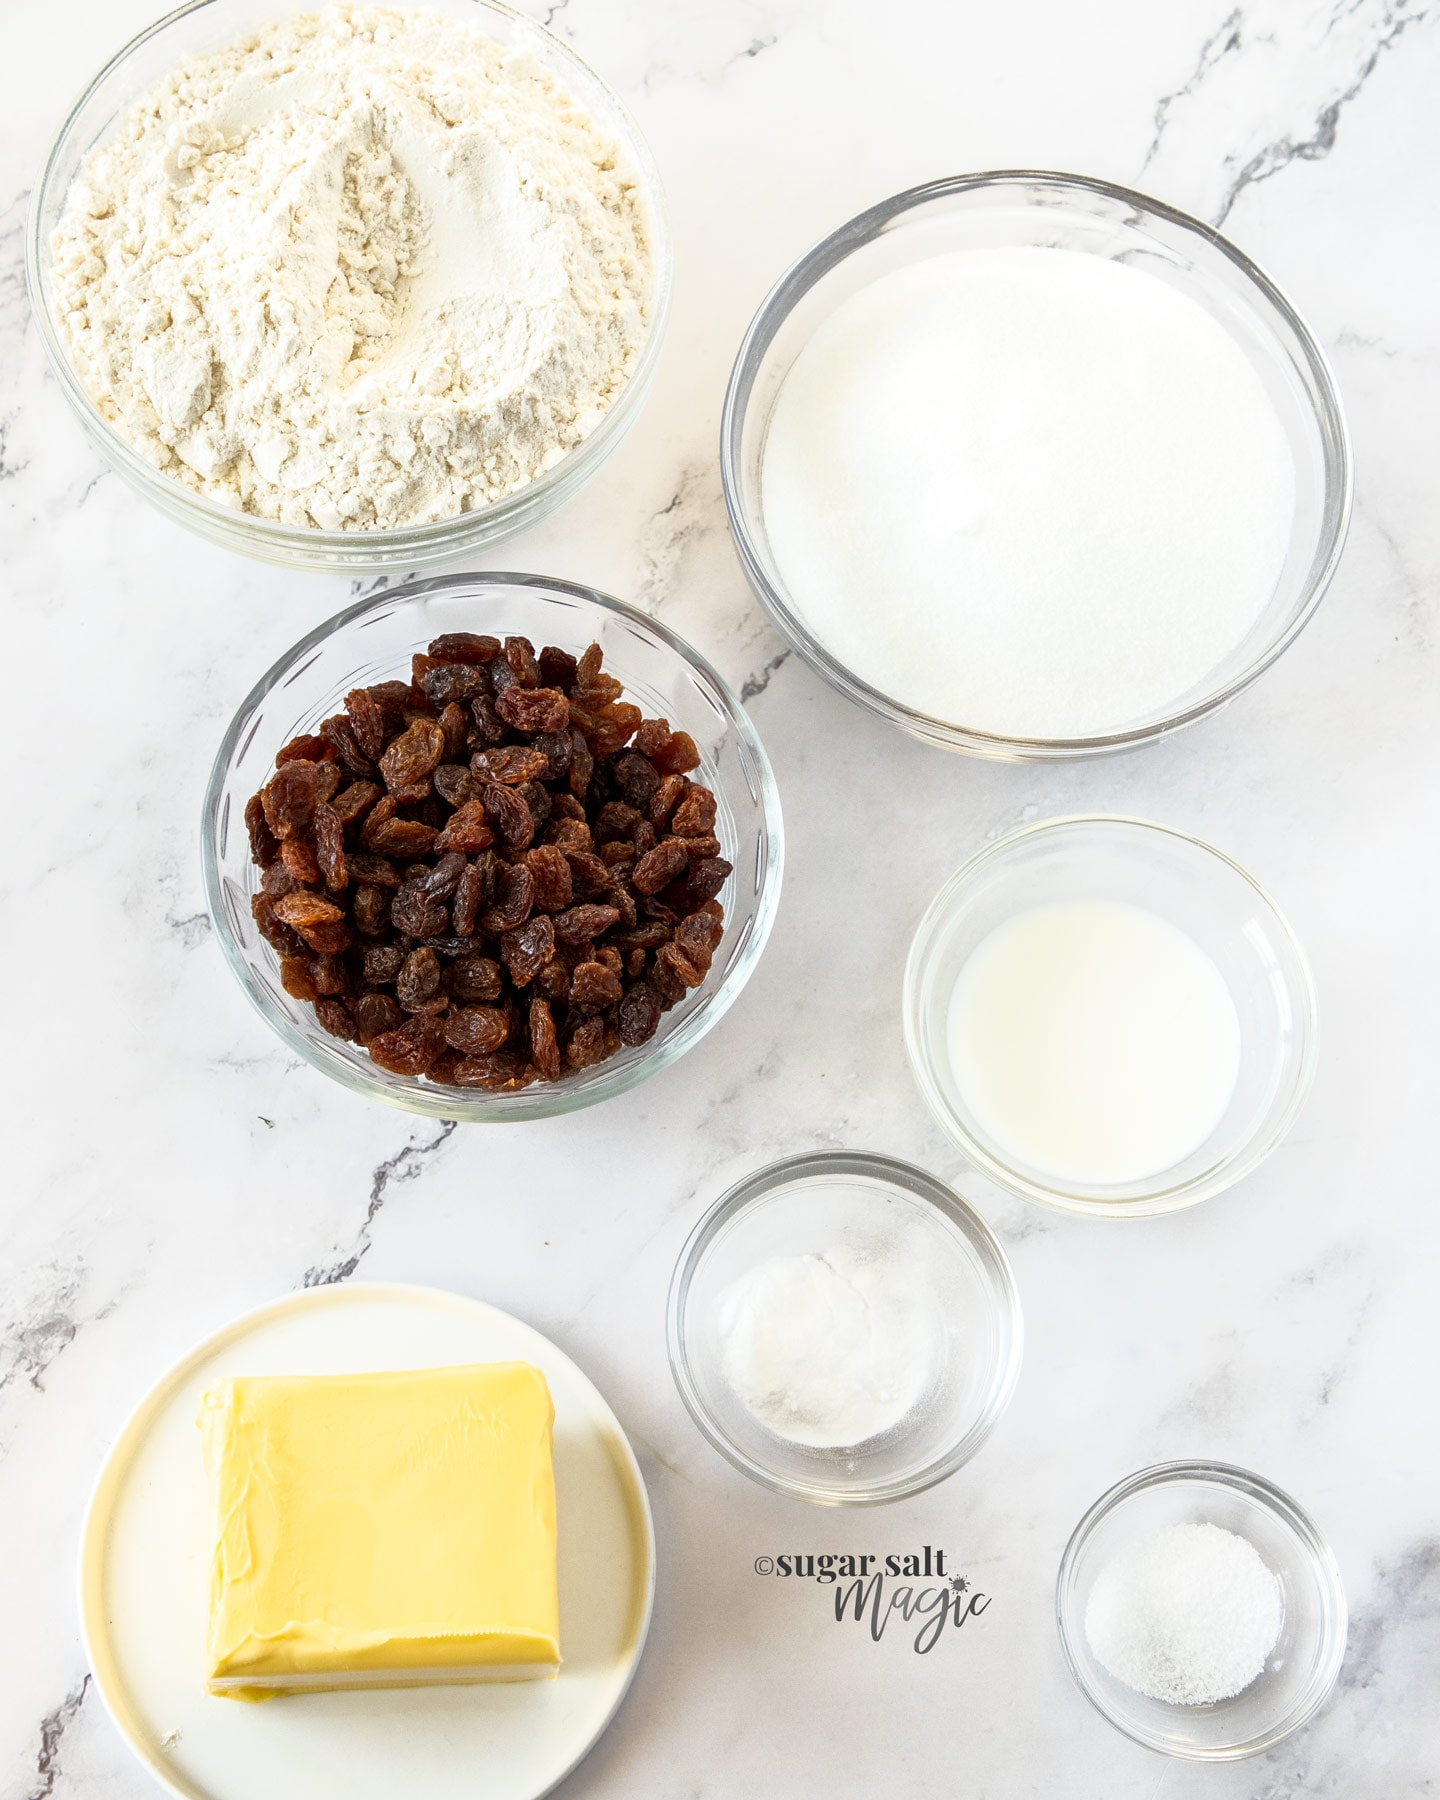 Ingredients for sultana cookies in glass bowls on a marble benchtop.